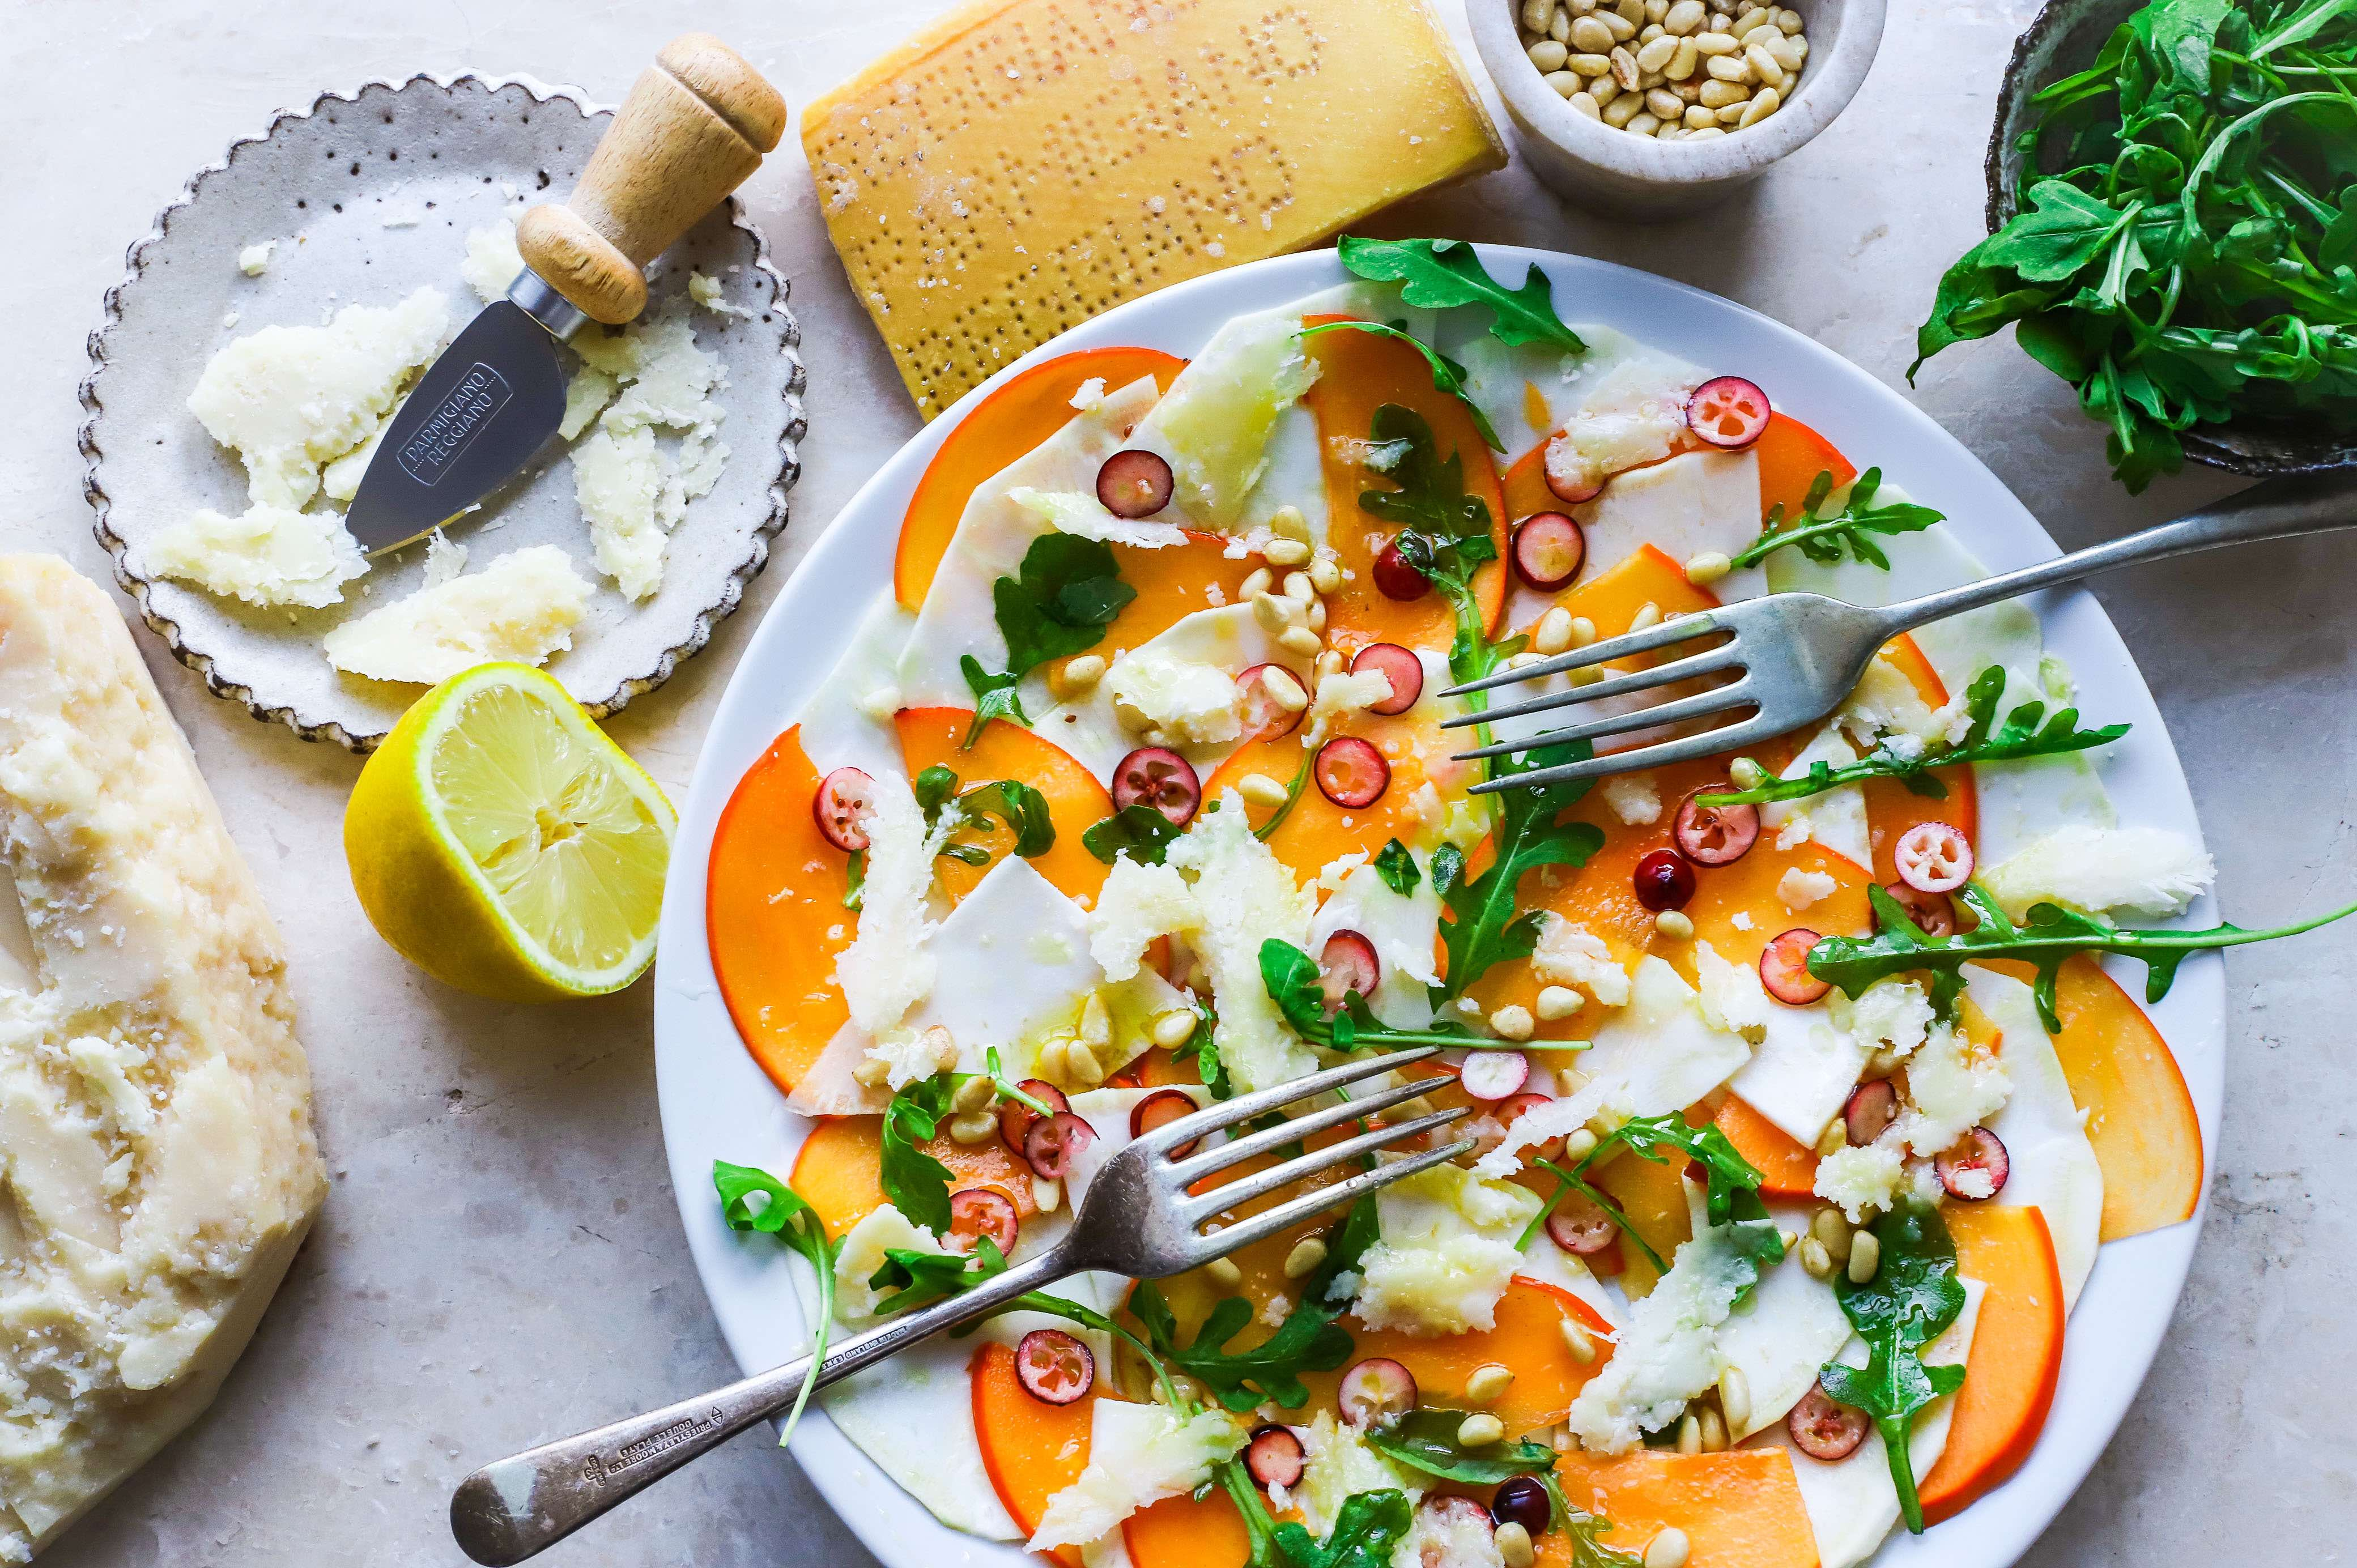 persimmon and celeriac salad with parmesan